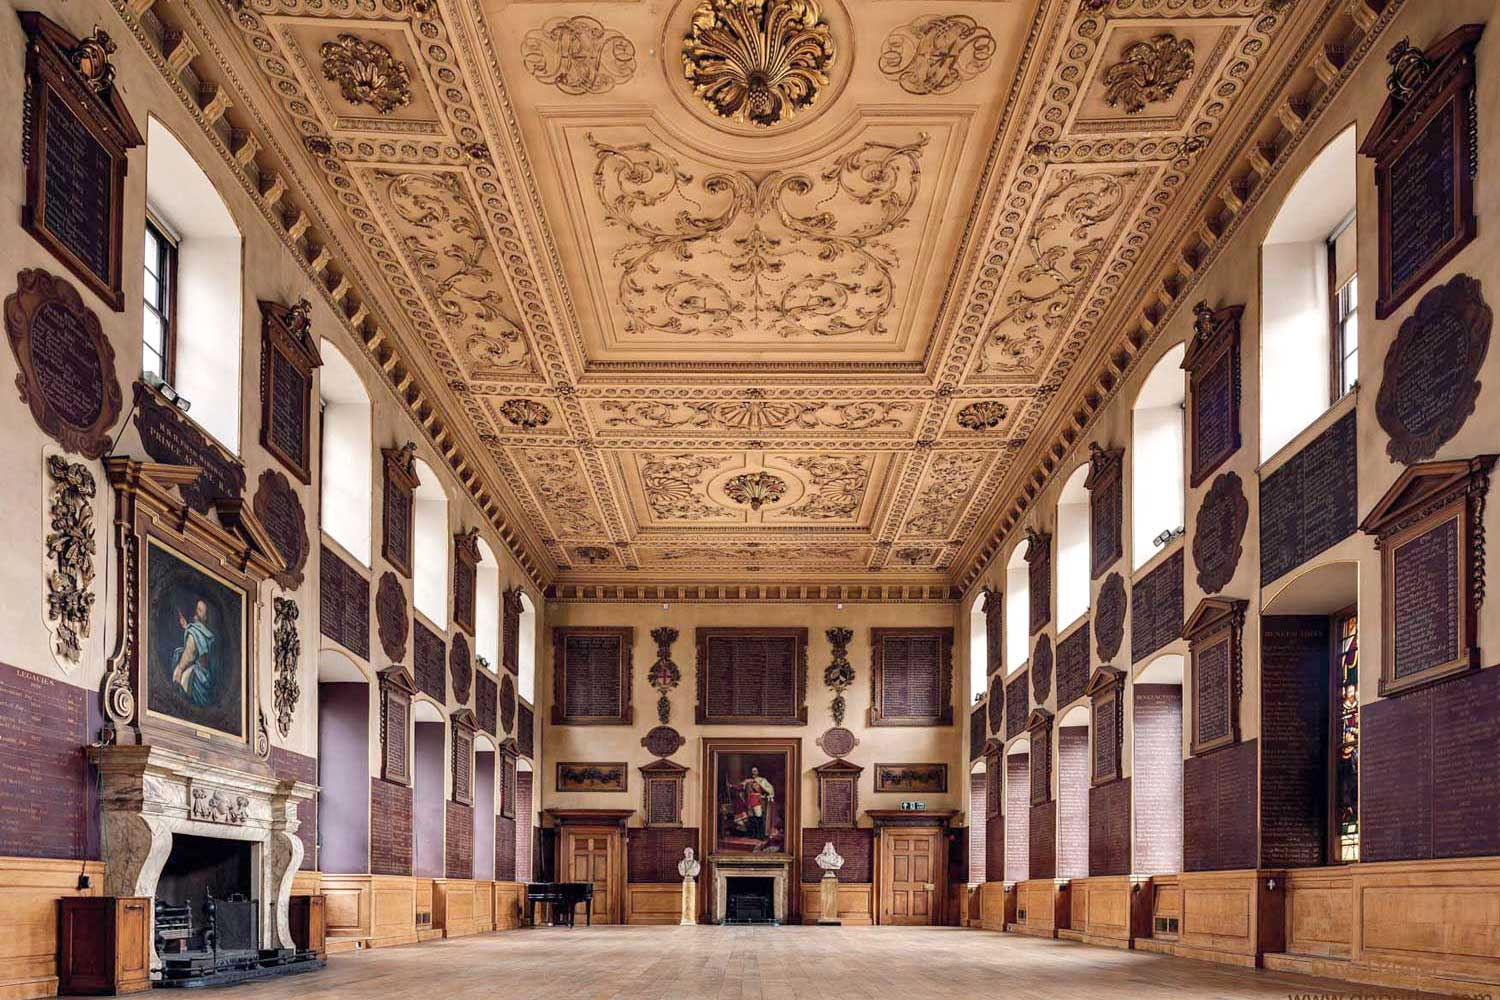 The Great Hall – David Butler